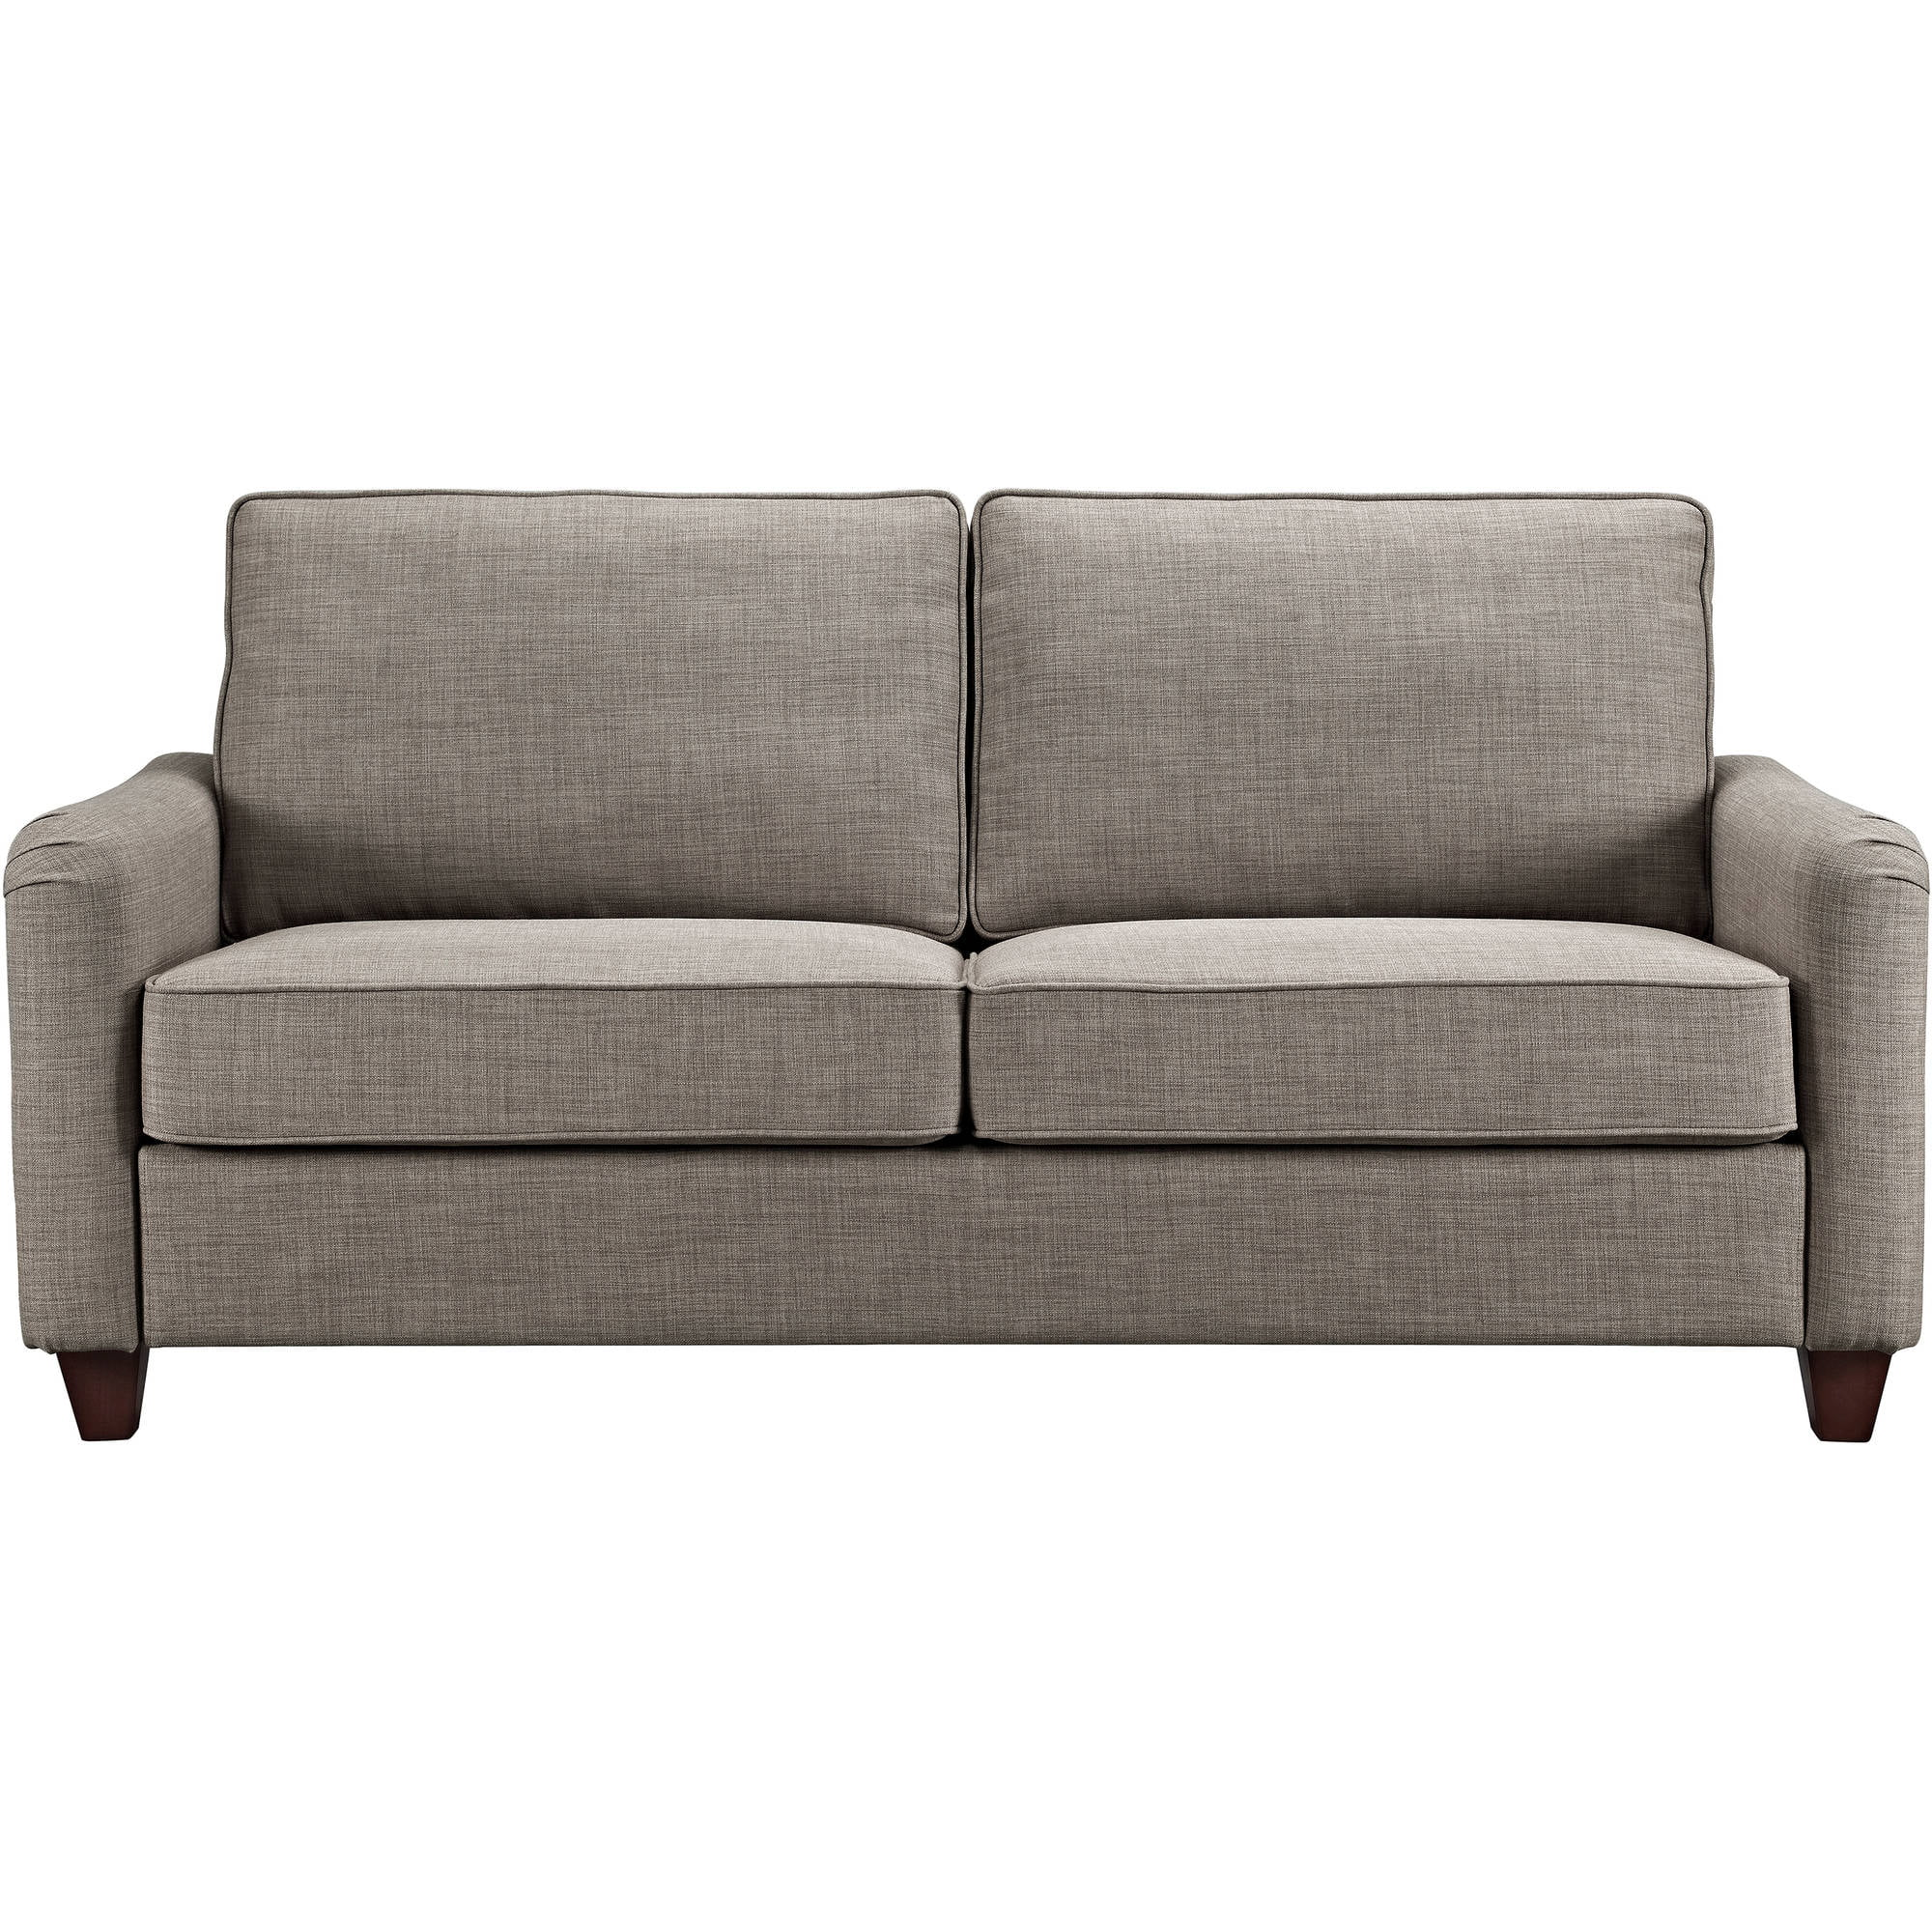 Popular Categories  Living Room Furniture  Futons Futons   Sofas   Couches. Living Room Furniture   Walmart com